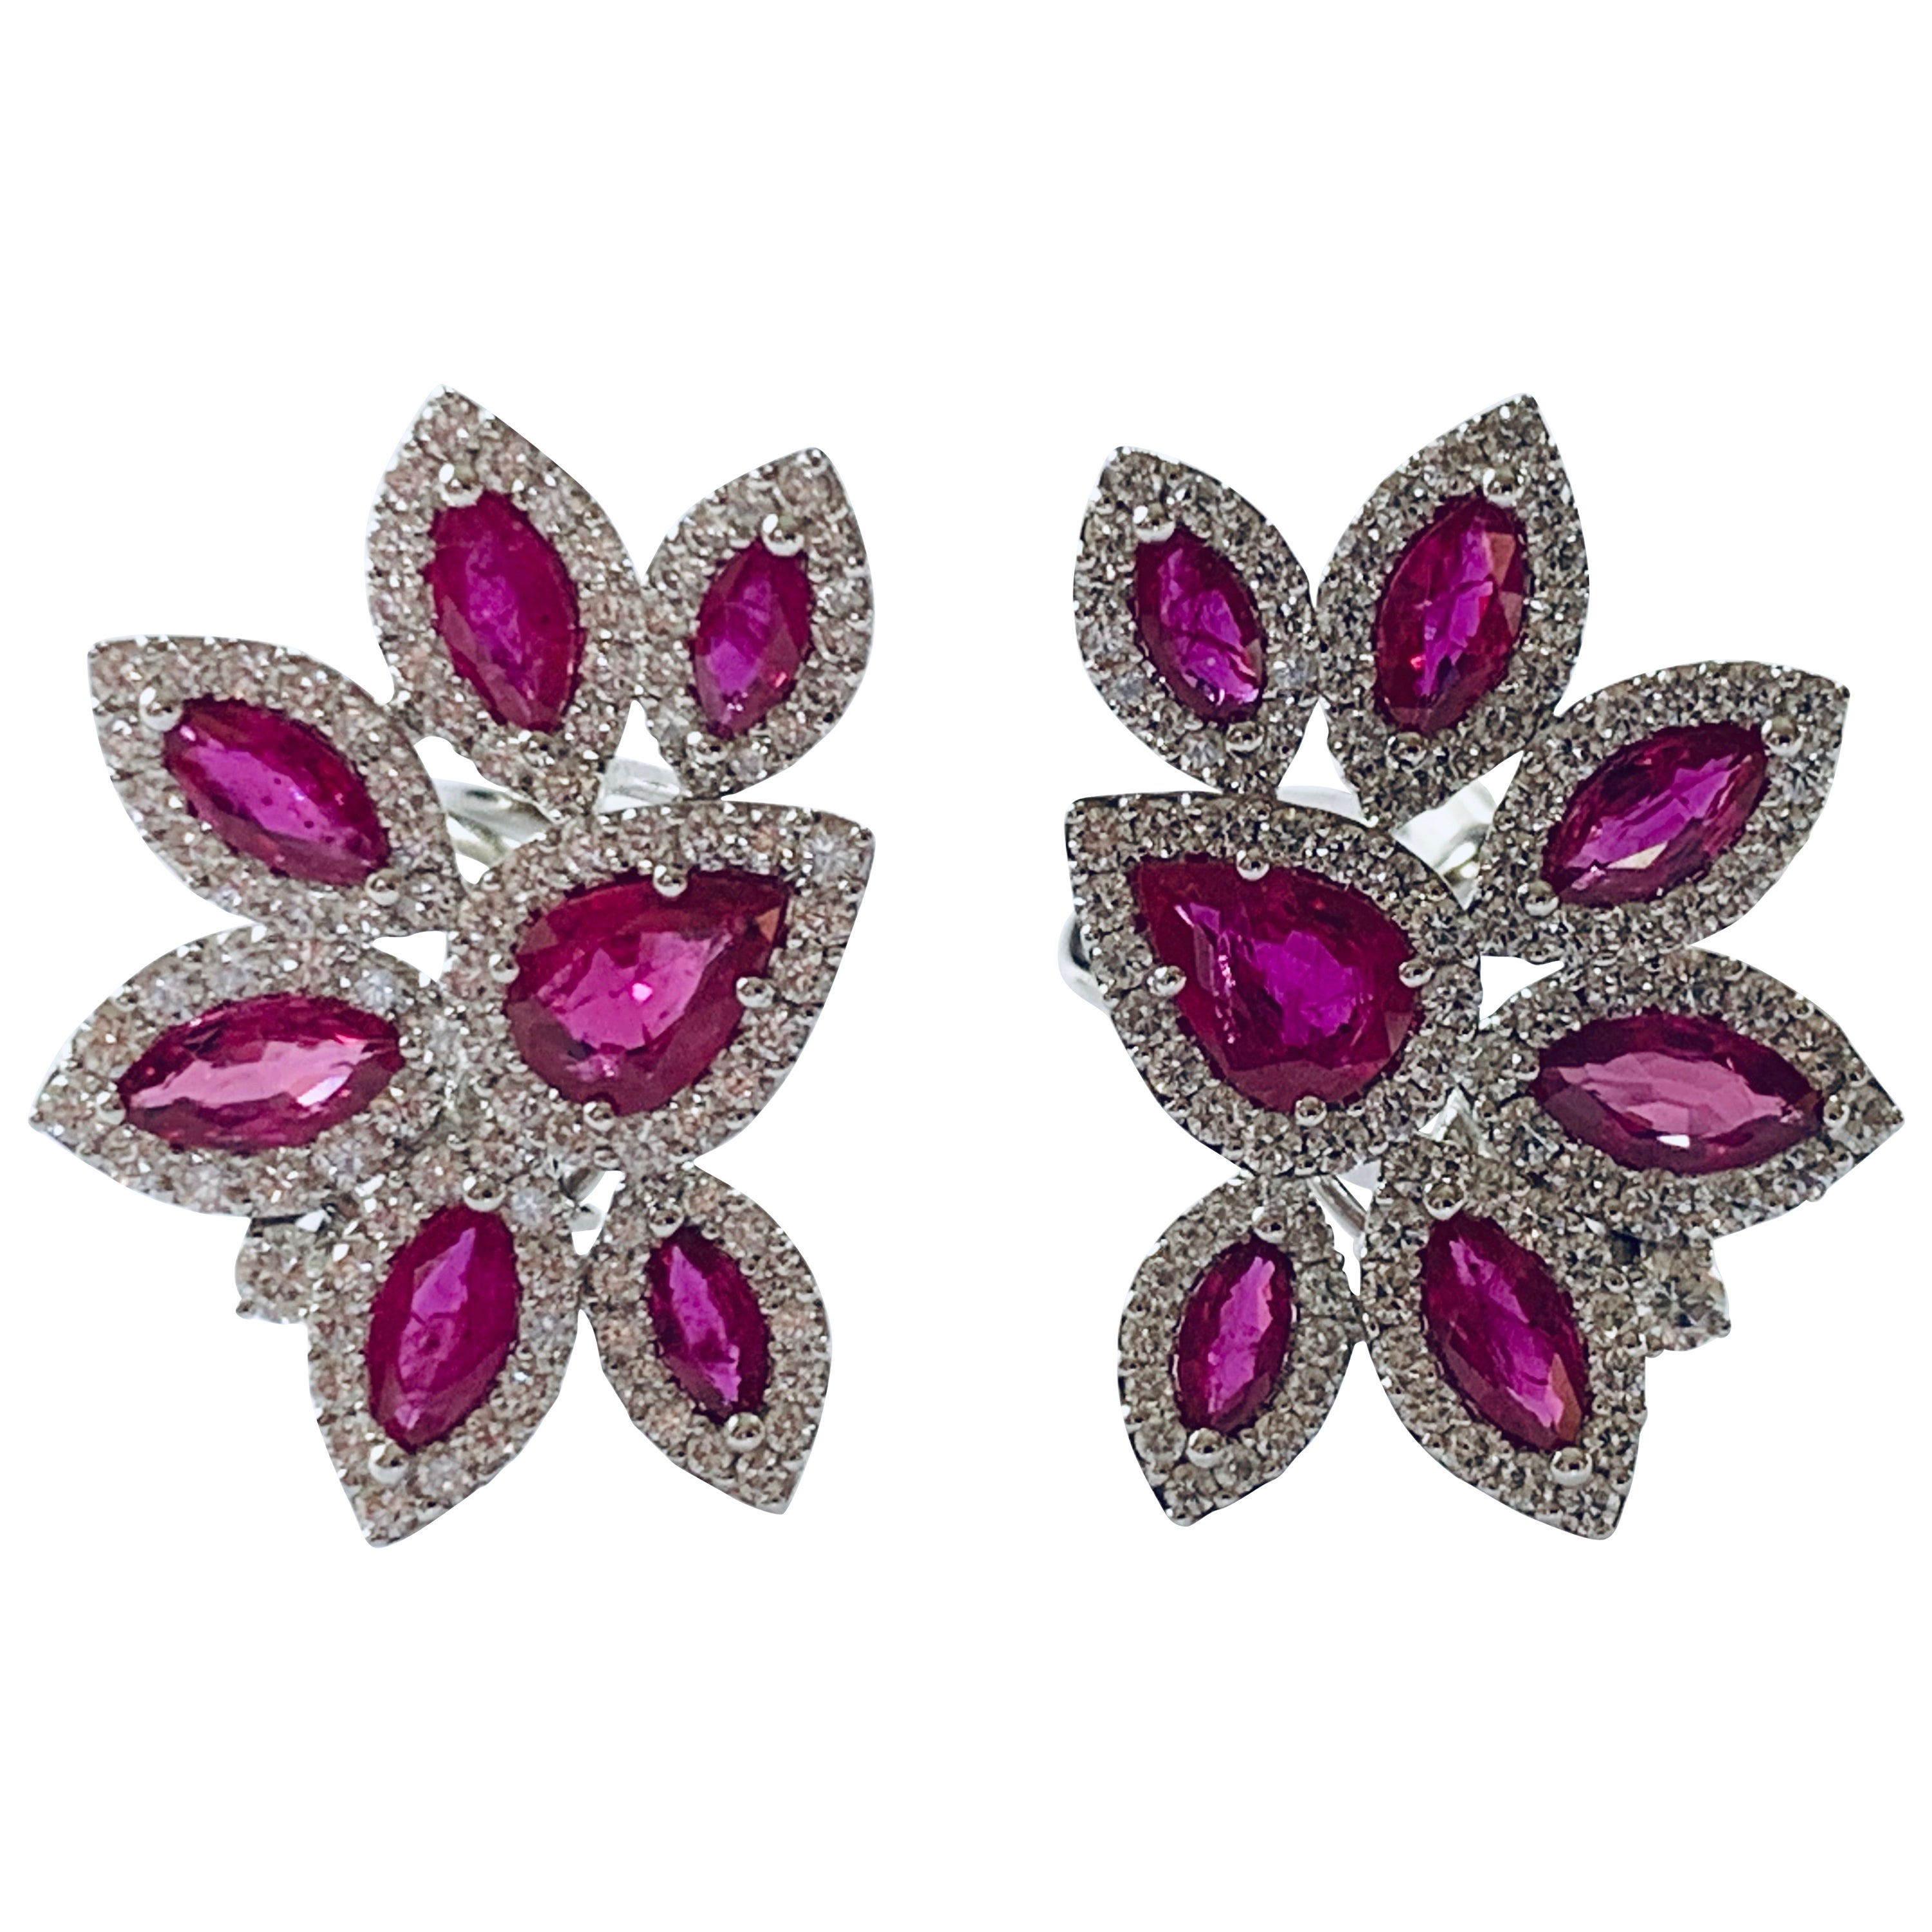 Elegant and Classy 18 Karat White Gold Ruby and Diamond Cluster Earrings